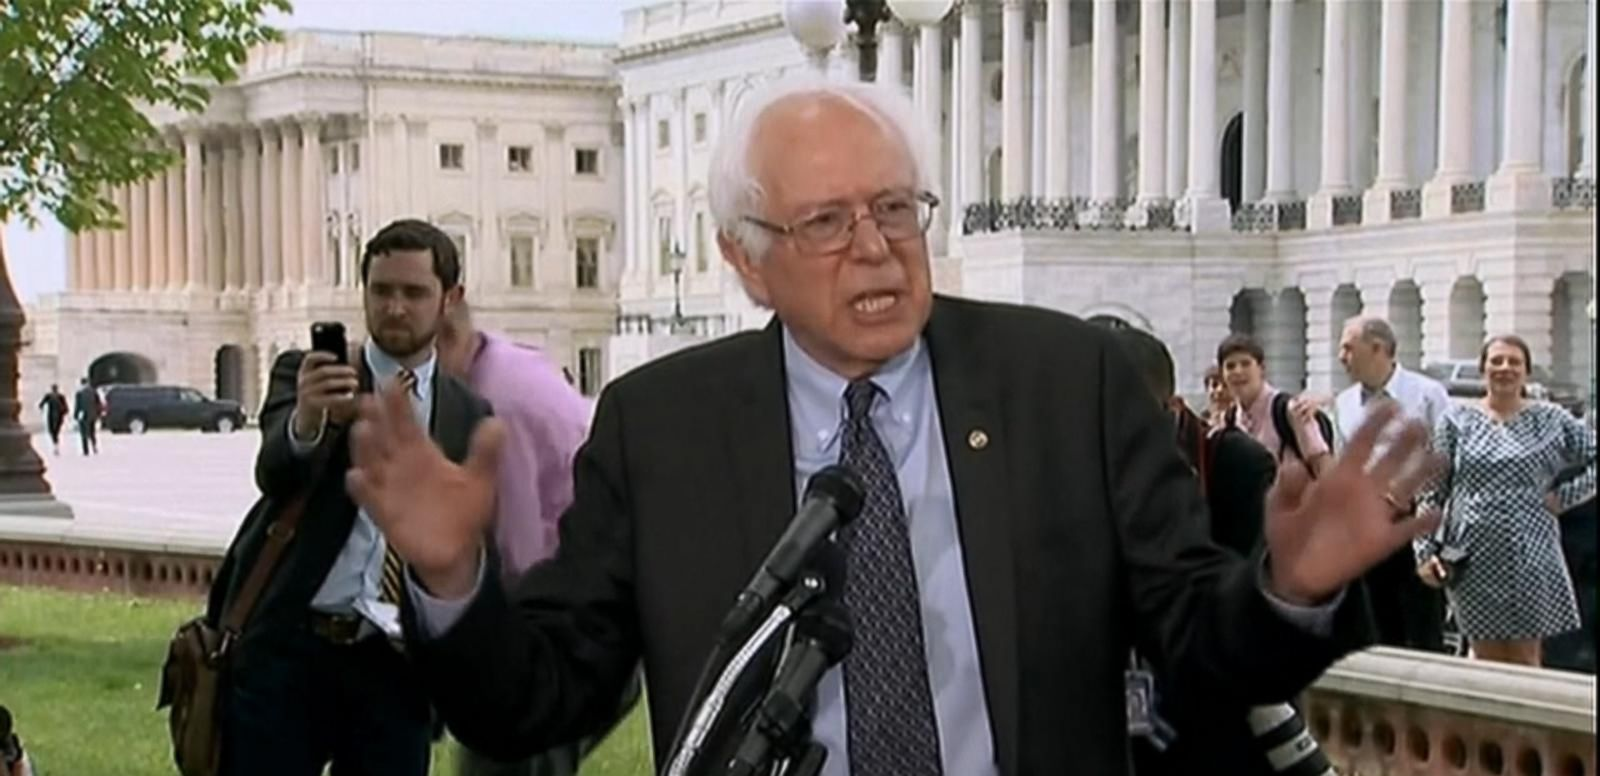 VIDEO: Take a Look at Bernie Sanders' 2016 Presidential Campaign